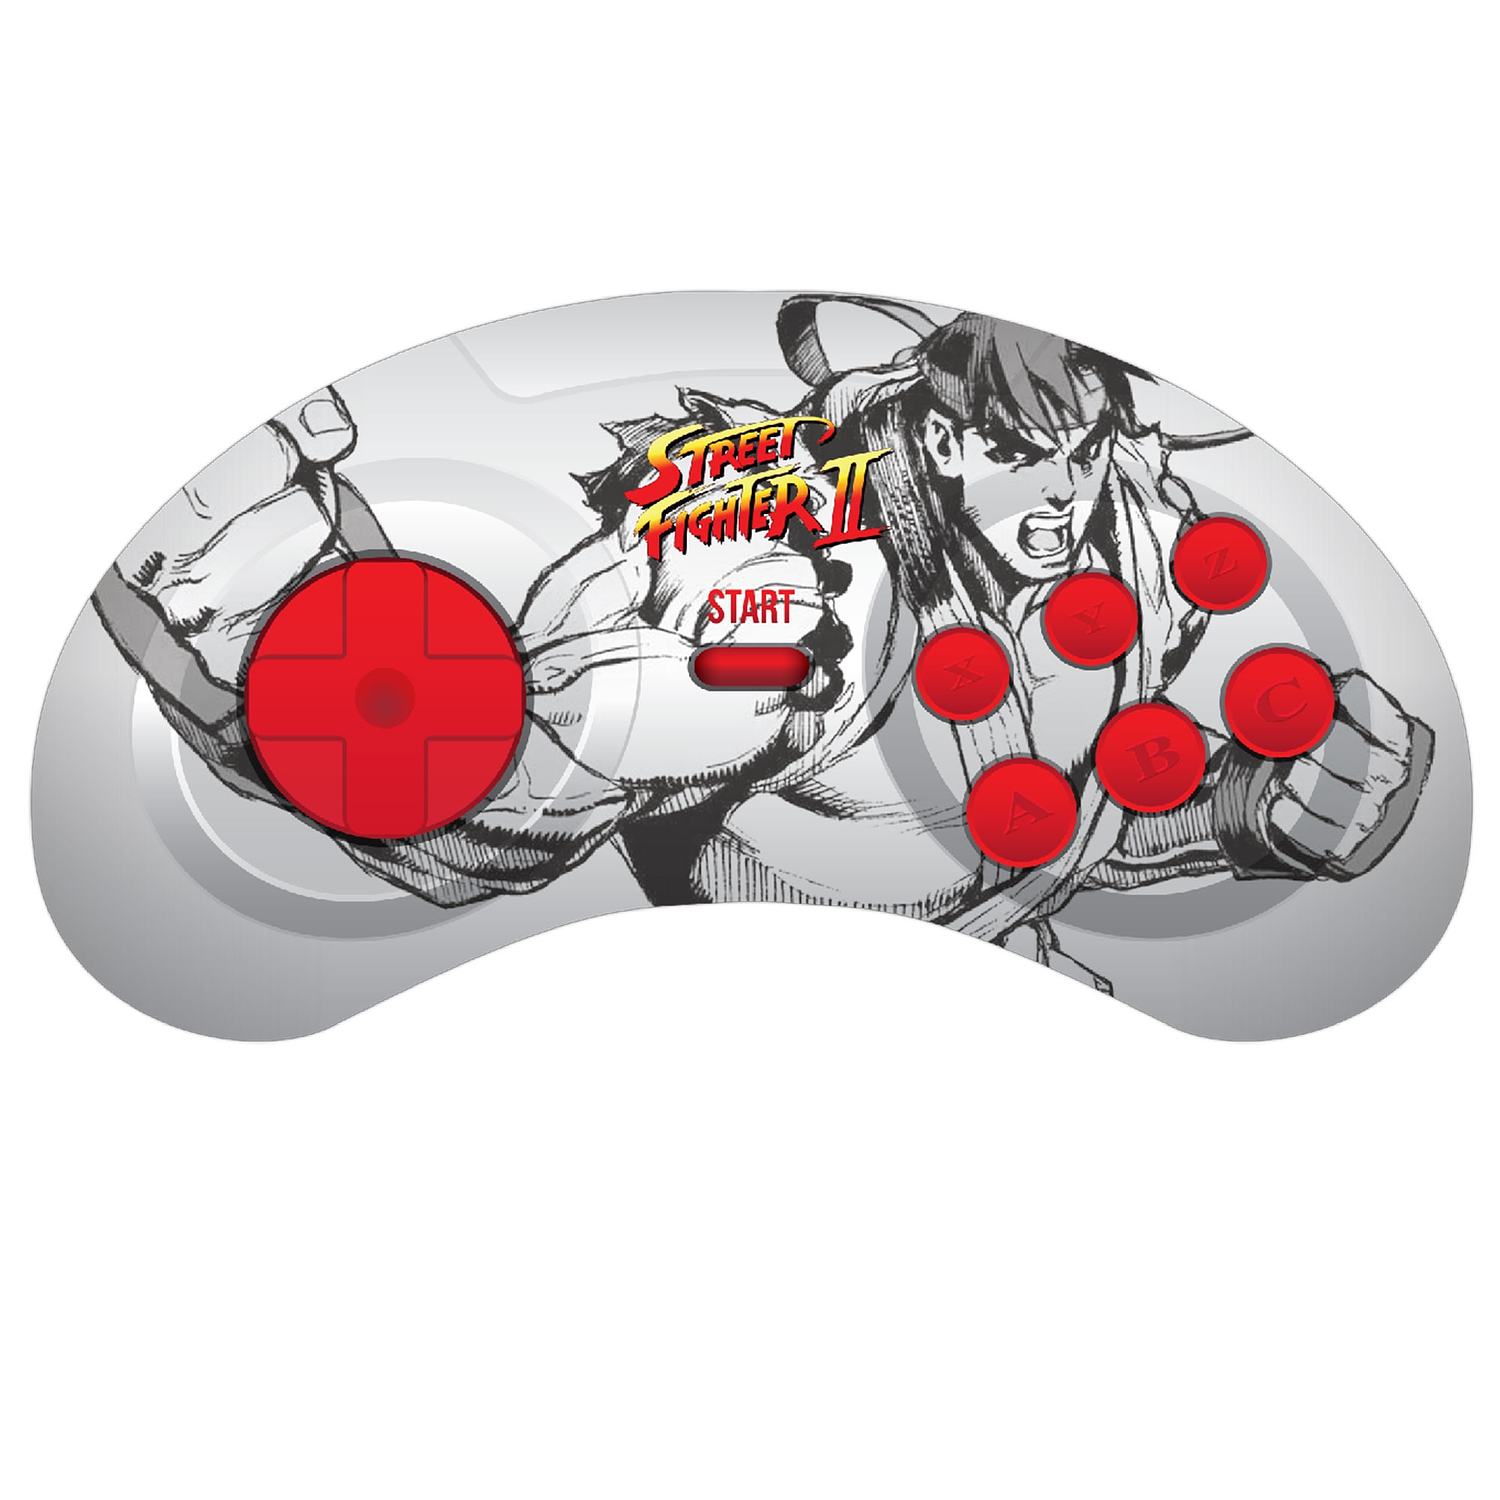 Retro-Bit PC/USB Genesis Style Controller, Street Fighter Ryu Capcom, Gray/Red